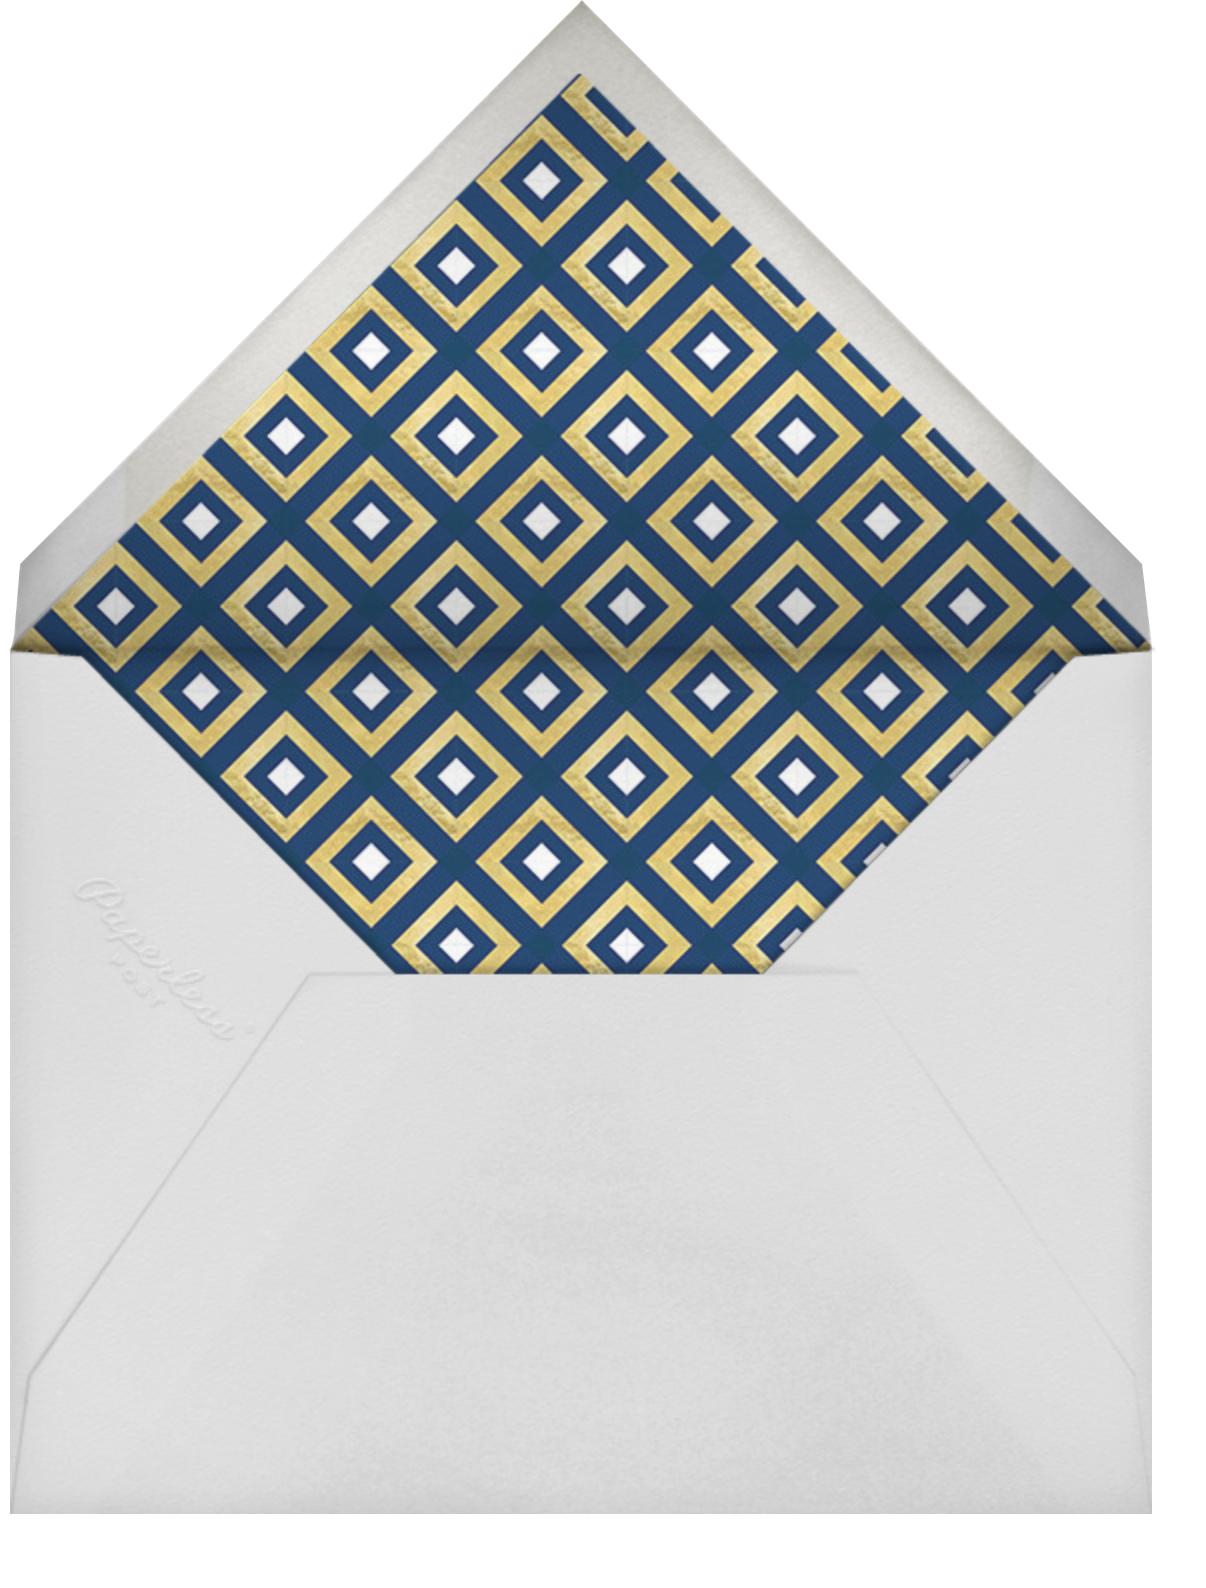 Bobo - Gold and Navy Blue - Jonathan Adler - Ticketed events - envelope back